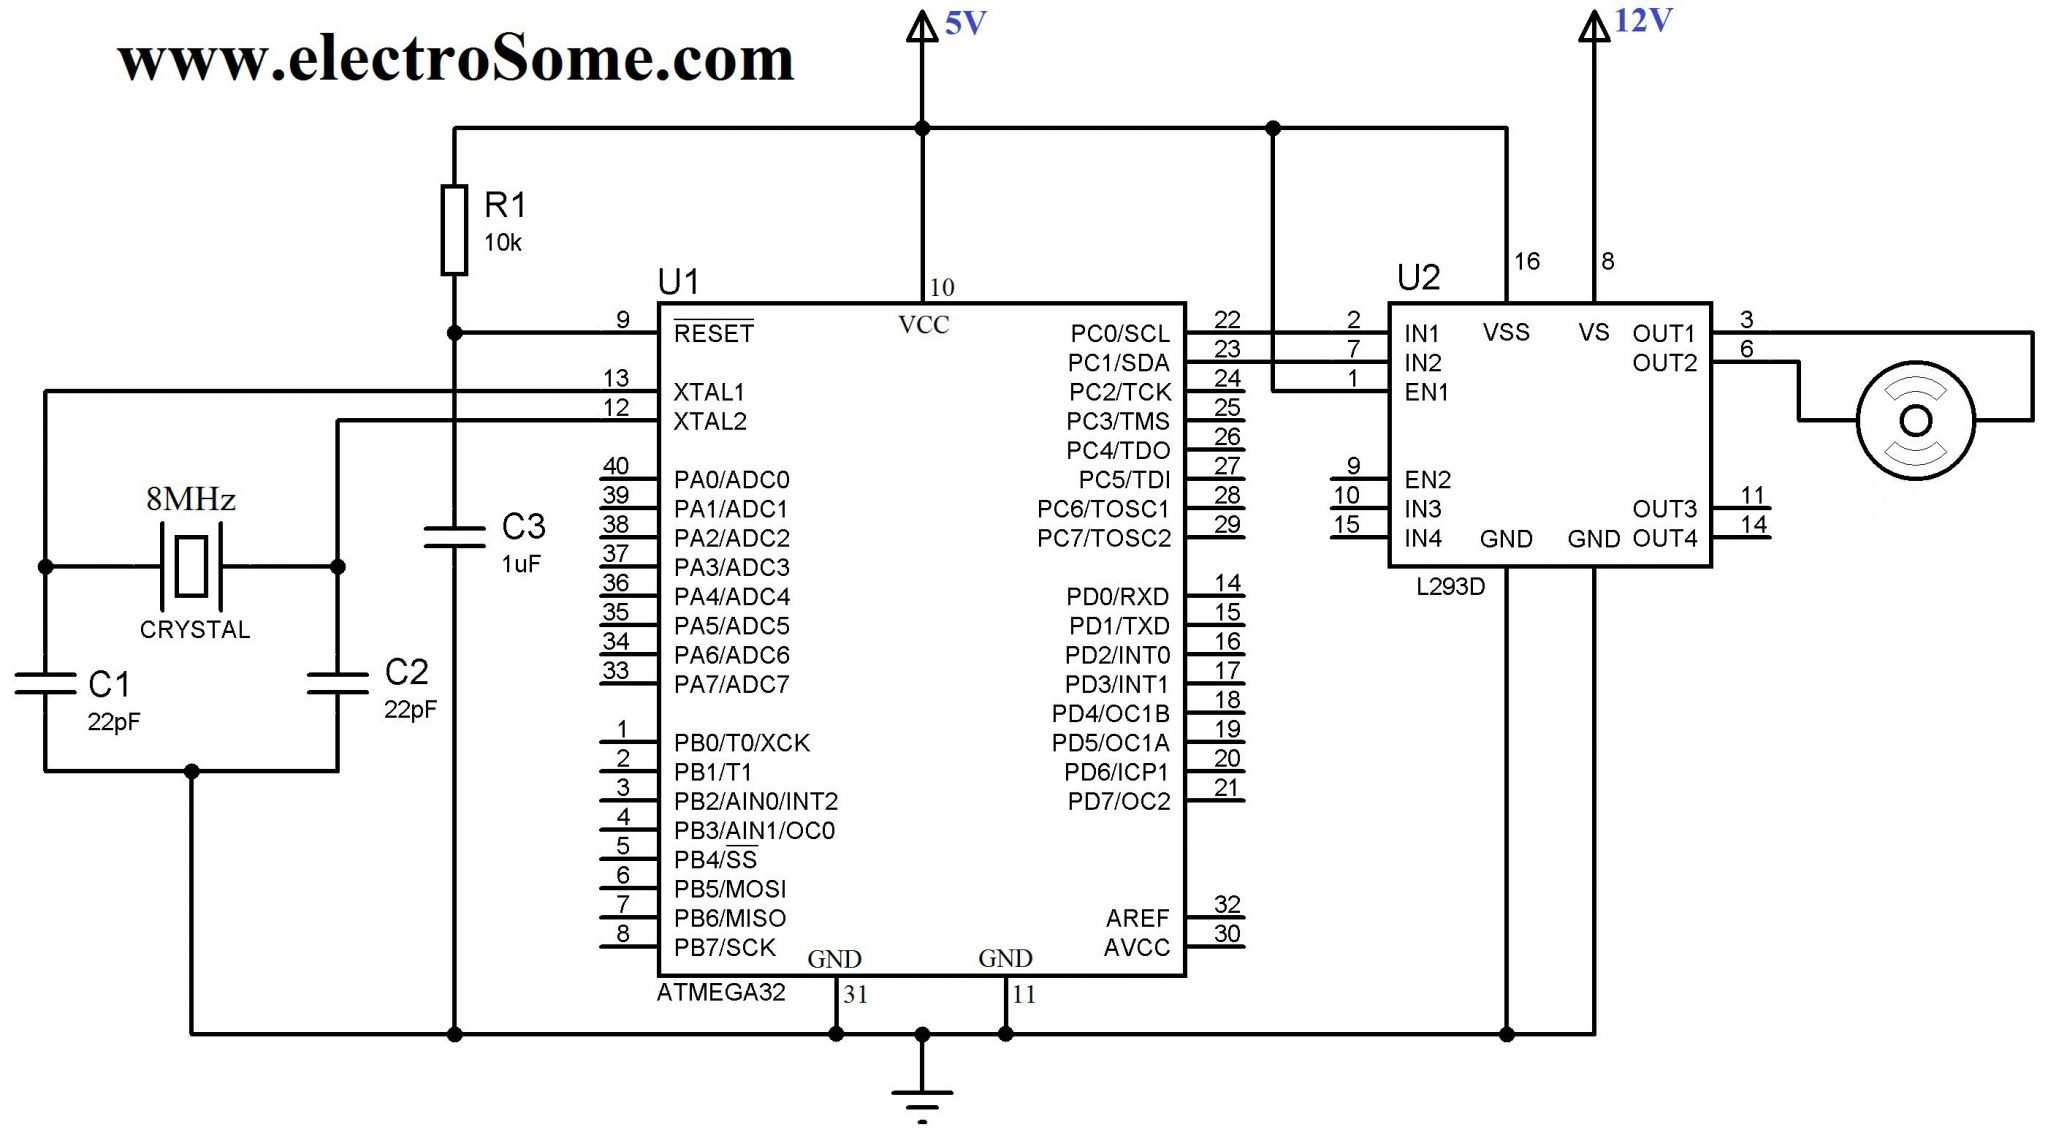 Viewtopic moreover Relay Switch Wiring Diagram furthermore Interfacing Dc Motor Atmega32 L293d further SEBP40000410 moreover How To Connect Tsop1738 Ir Sensor. on 5 pin relay wiring diagram